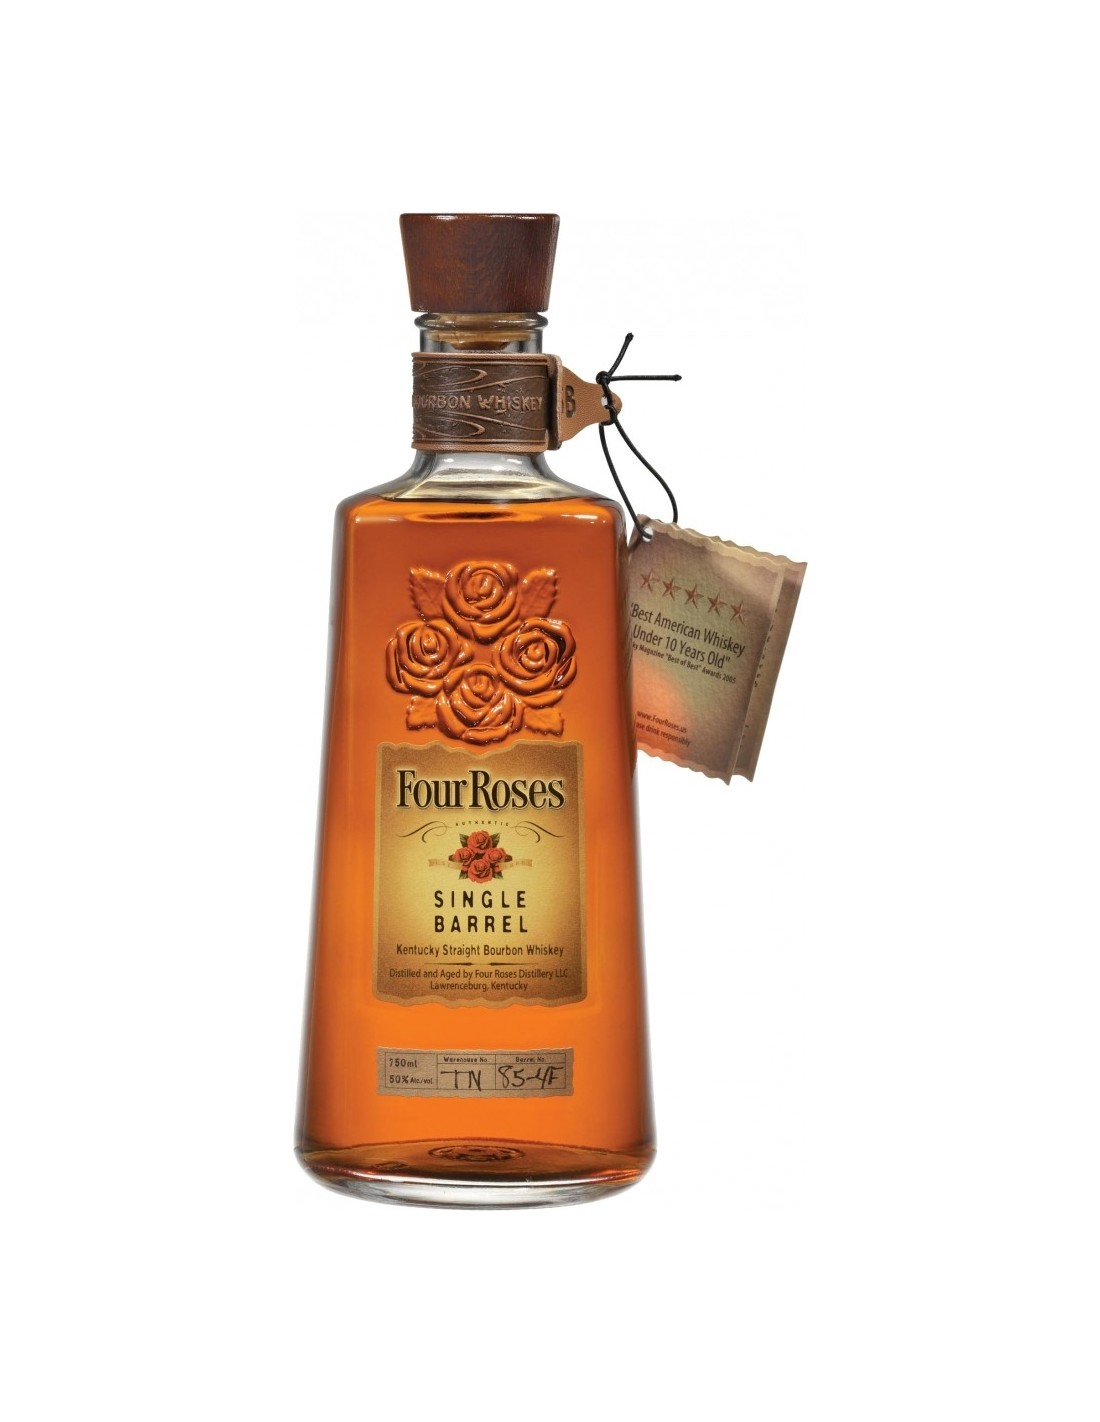 Whisky Bourbon Four Roses, 50% alc., 0.7L, America